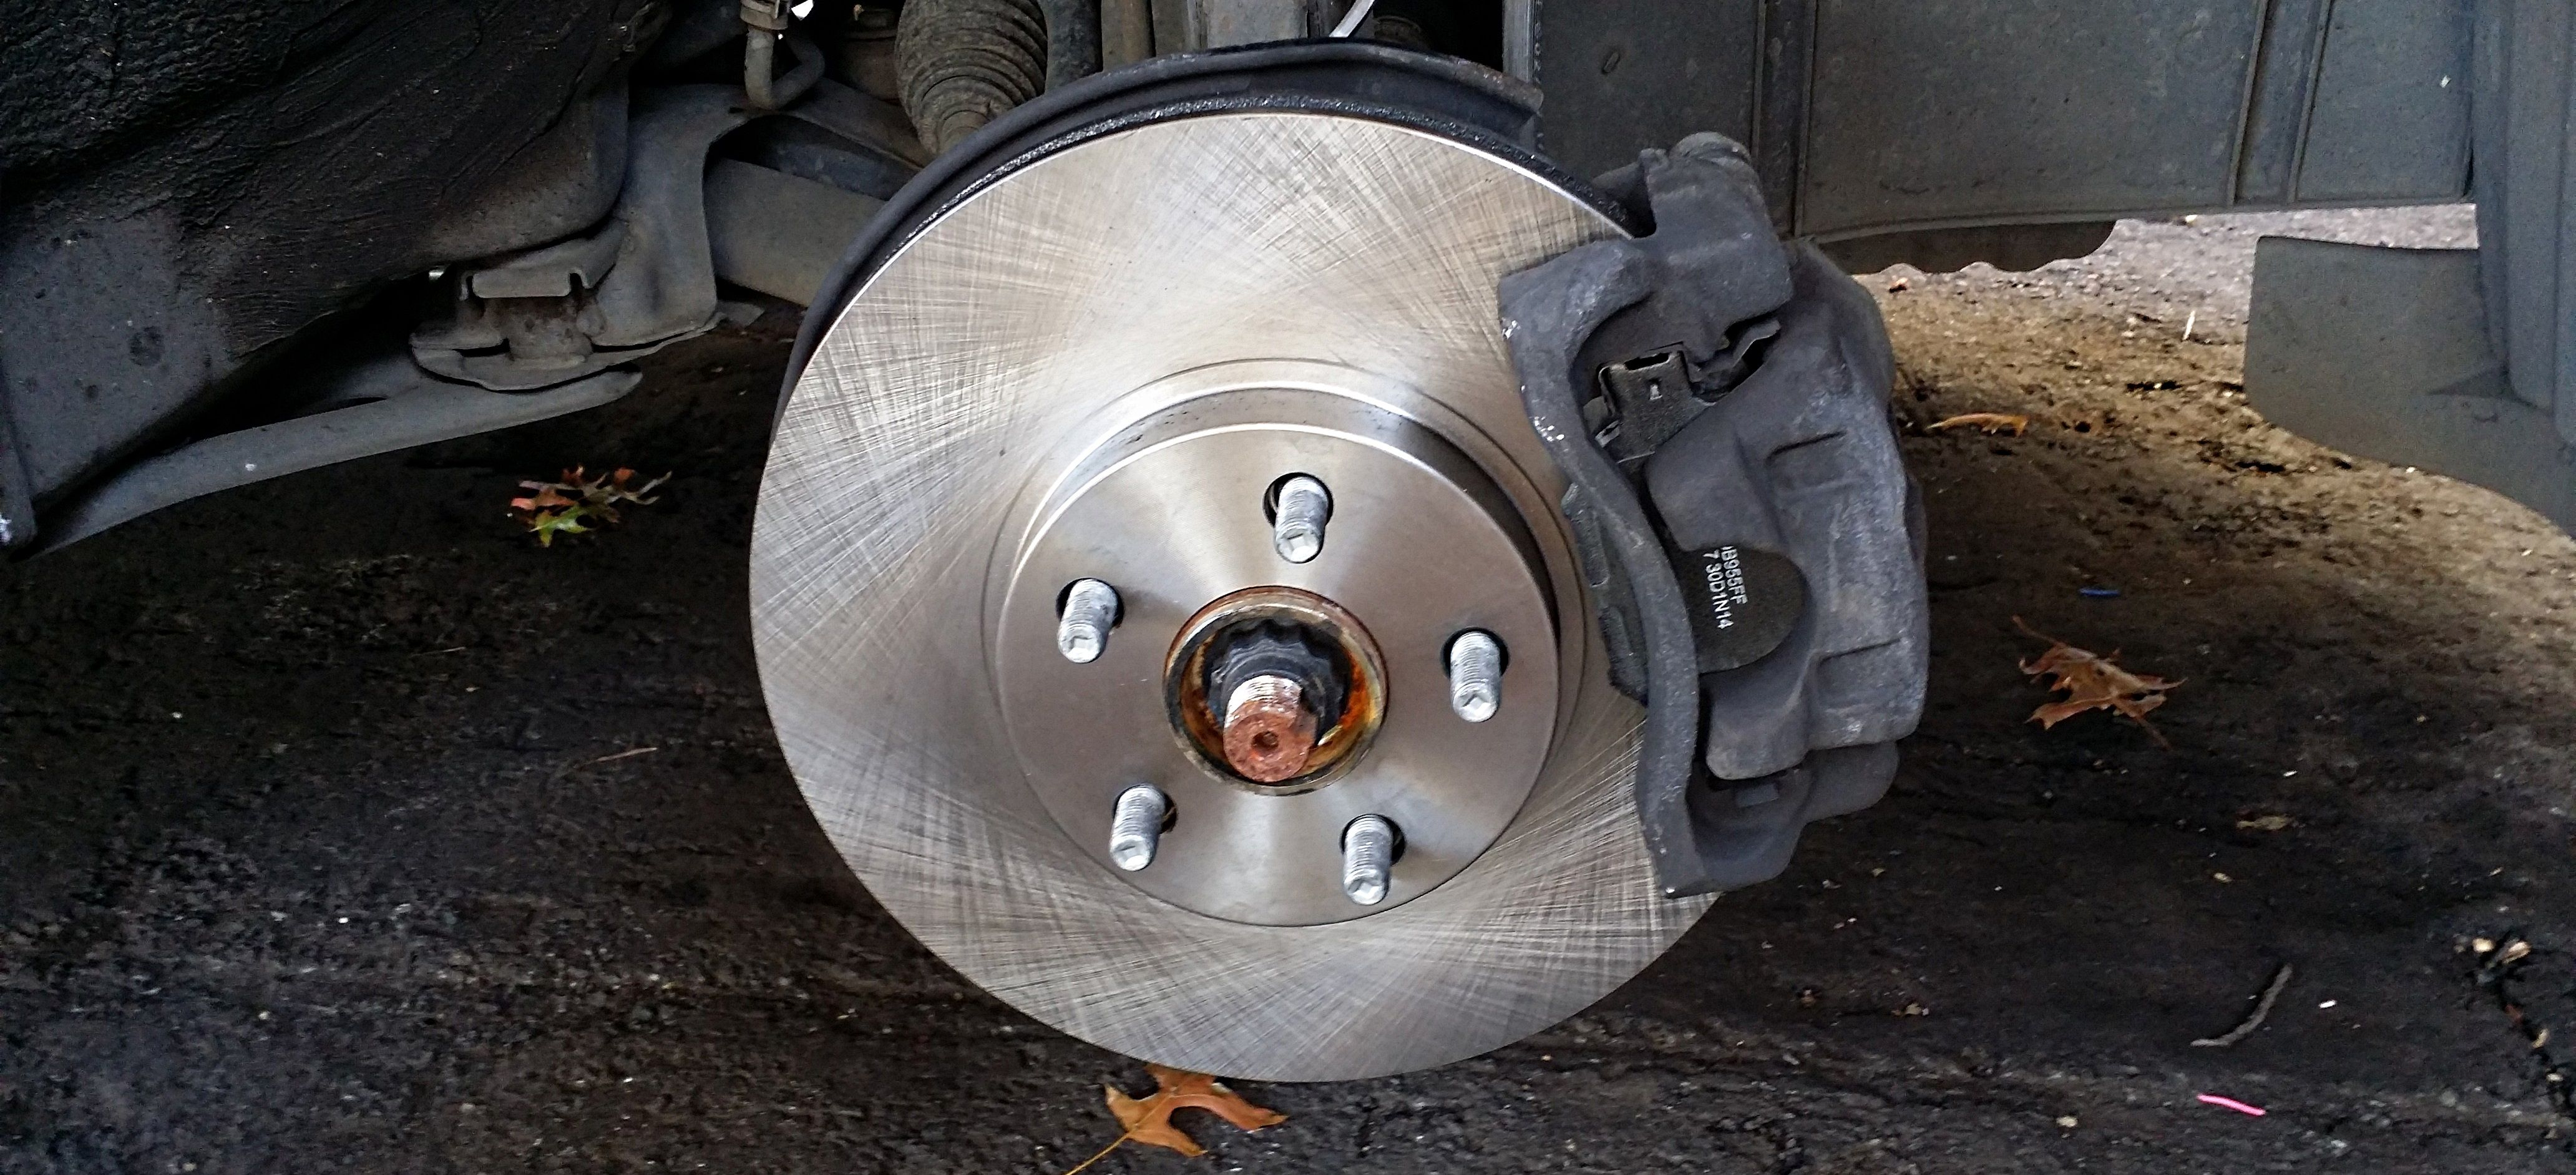 How Often Should You Change Your Brakes >> Here S How To Change Your Car S Brakes All By Yourself